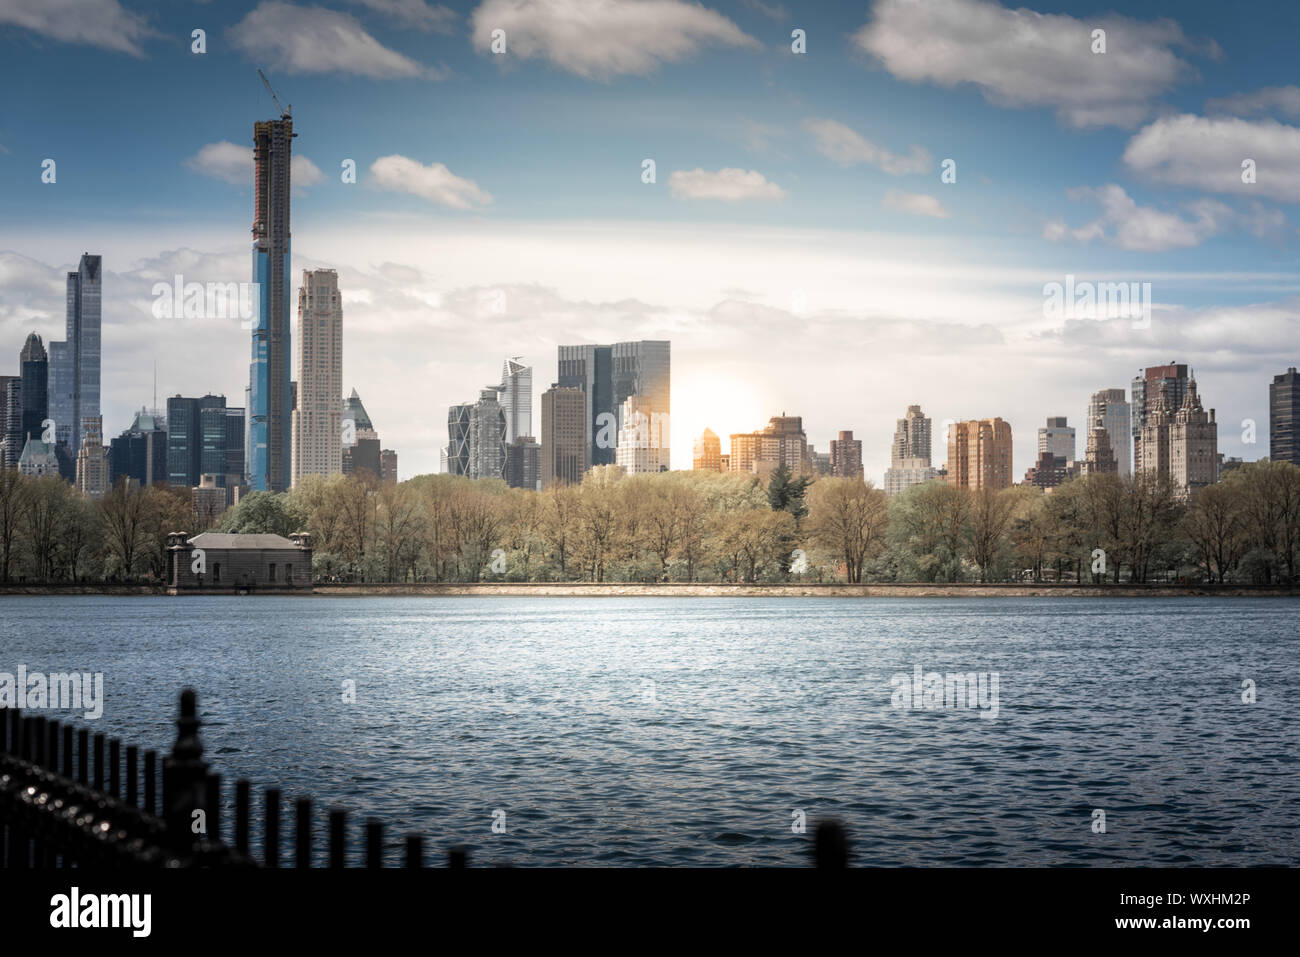 A shot of Central Park during a beautiful sunny day, with buidlings reflecting into the water of a lake. New York City, United States Stock Photo